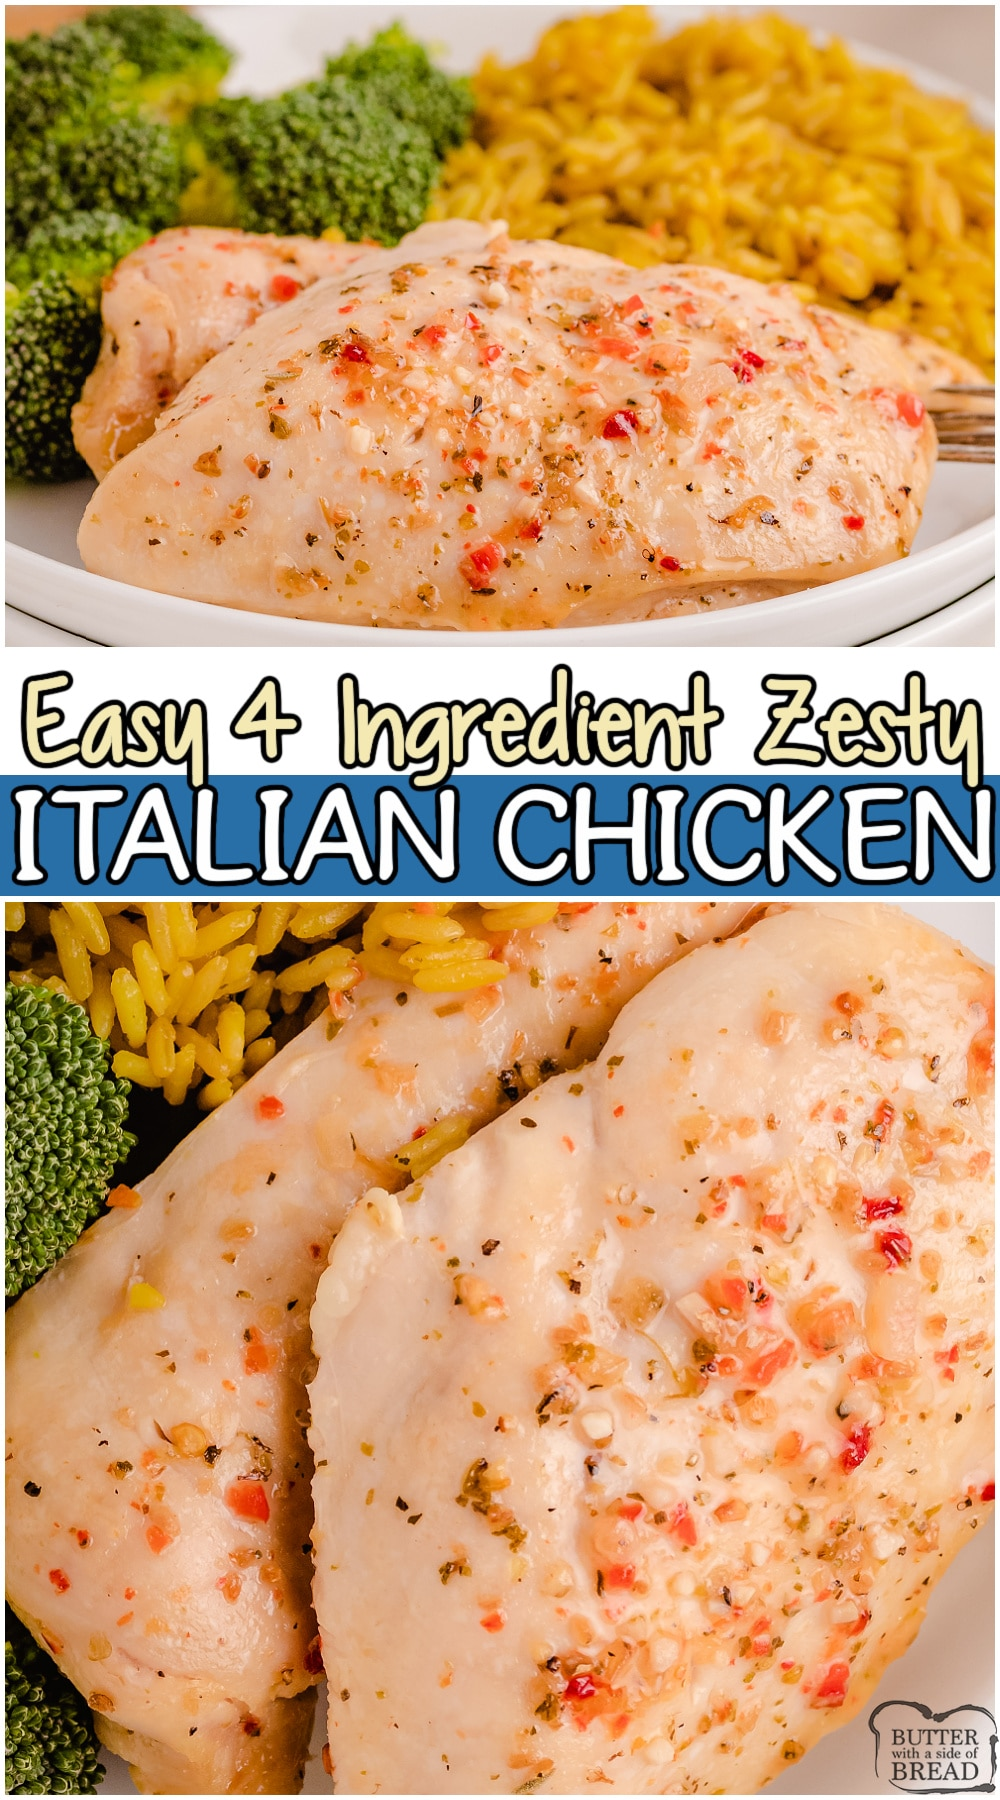 Zesty Italian chicken is an EASY dinner idea made with only 4 ingredients! Chicken, Italian dressing, garlic & Italian seasoning combine for a juicy, flavorful chicken recipe that everyone loves.